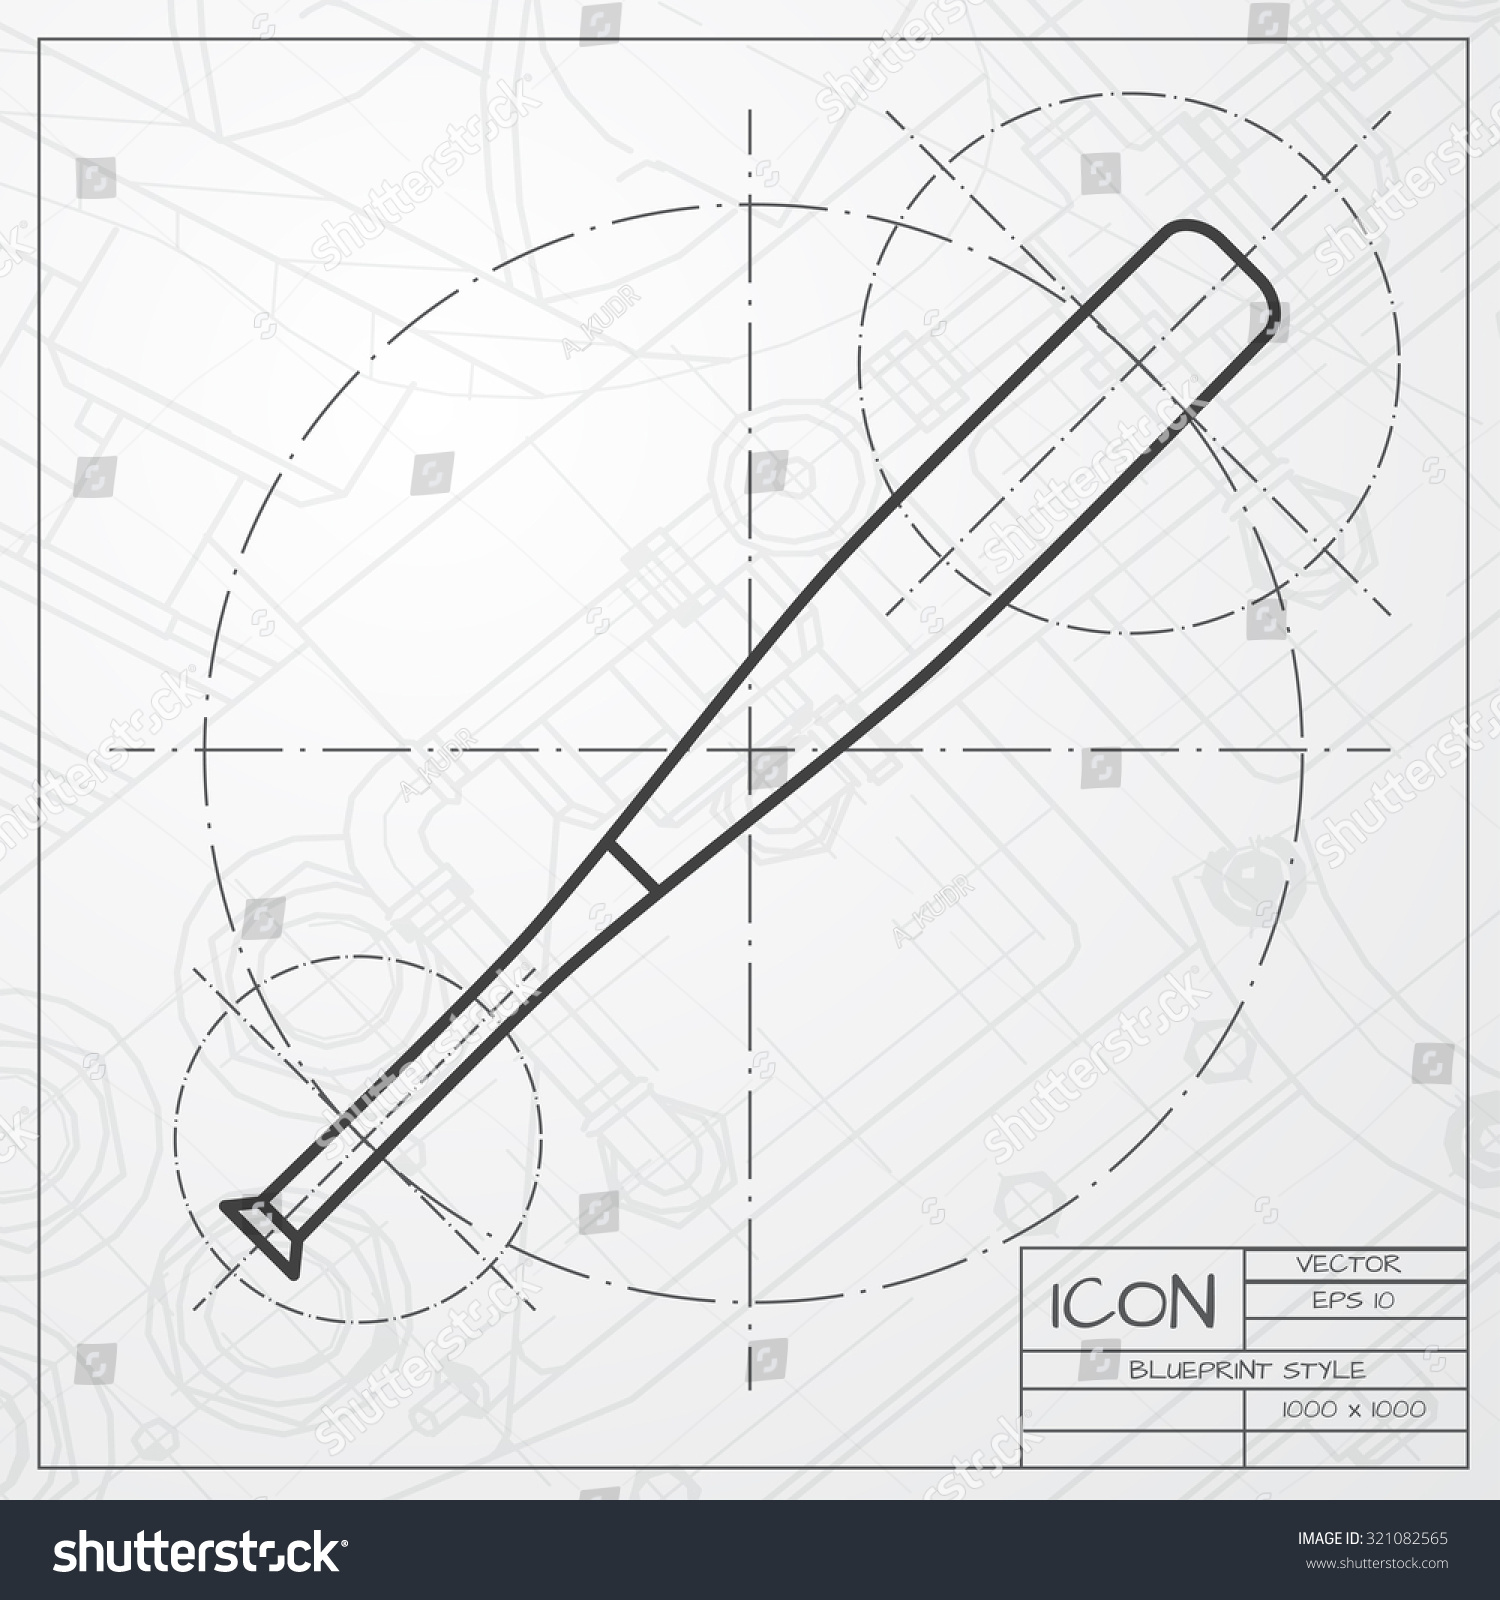 hight resolution of vector classic blueprint of baseball bat icon on engineer and architect background